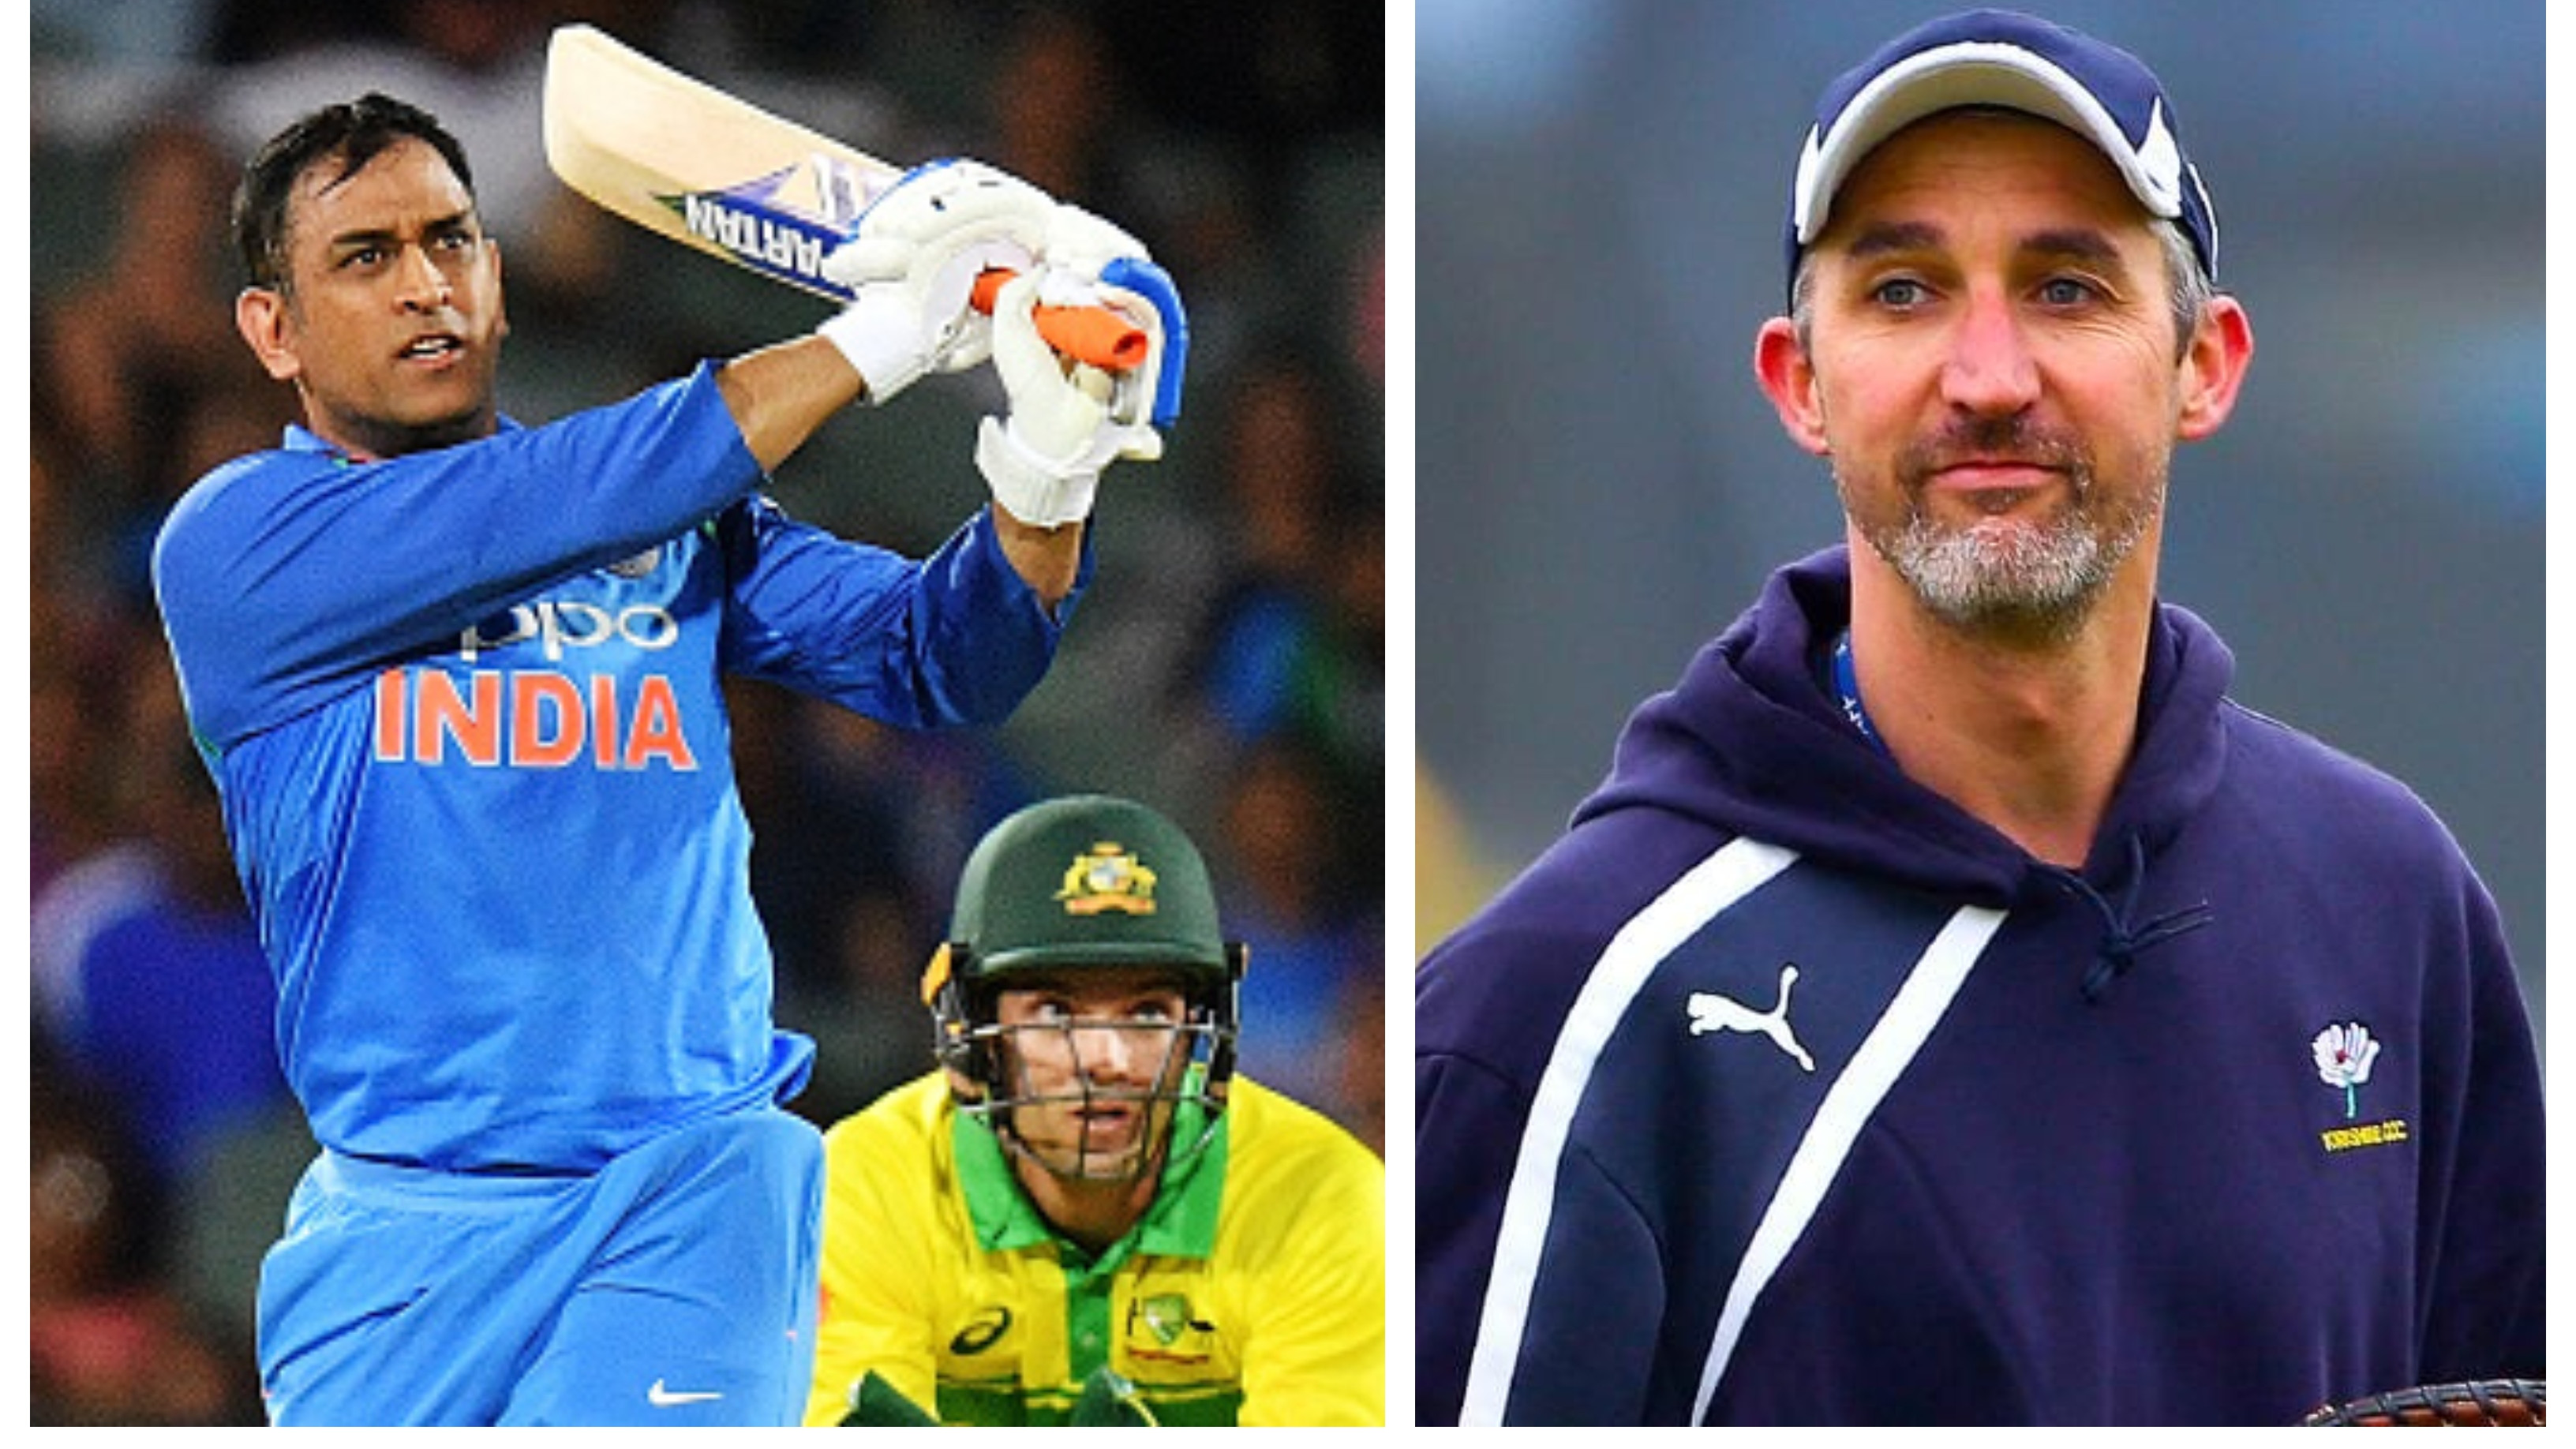 AUS v IND 2018-19: MS Dhoni knows how to pace an innings in different situations, says Jason Gillespie